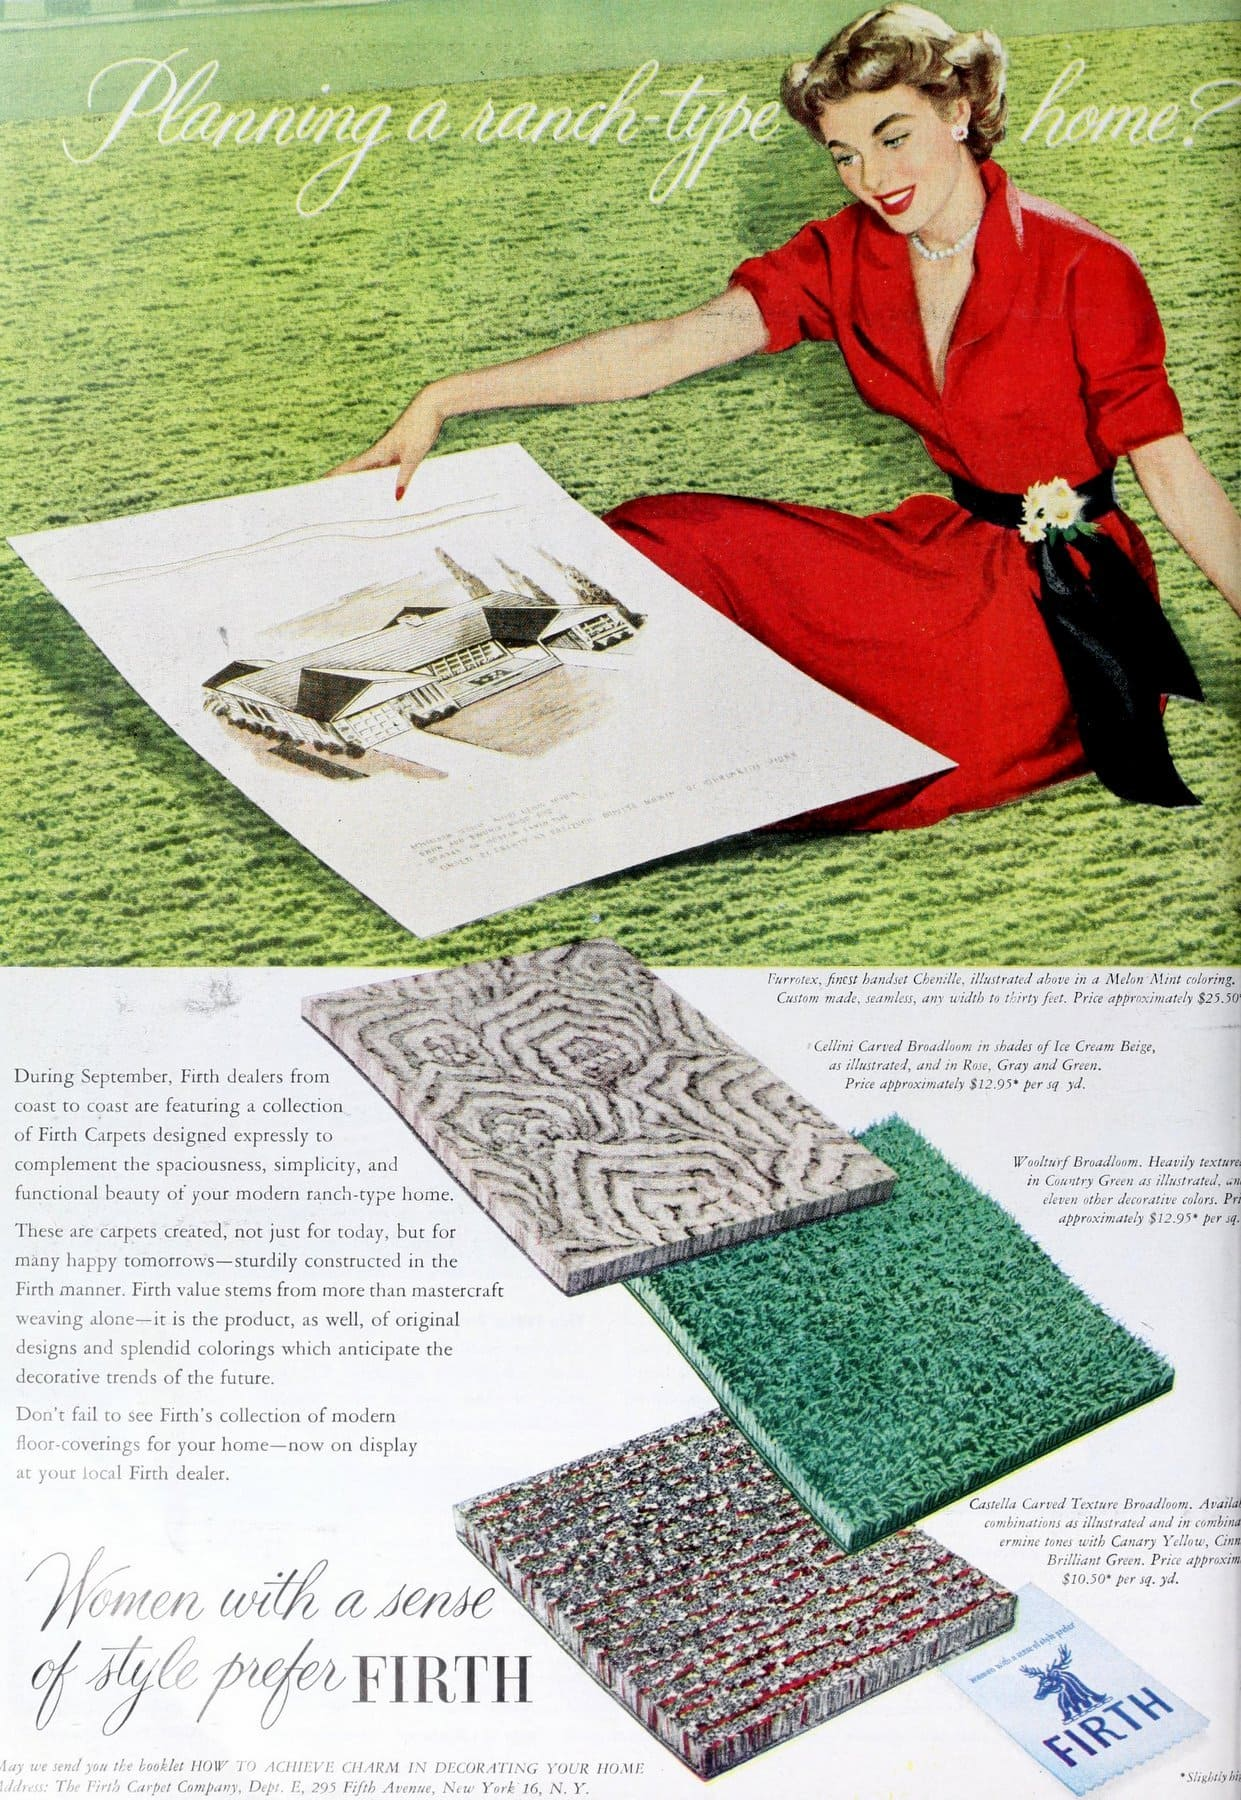 Vintage Firth sculpted and textured carpet (1950)